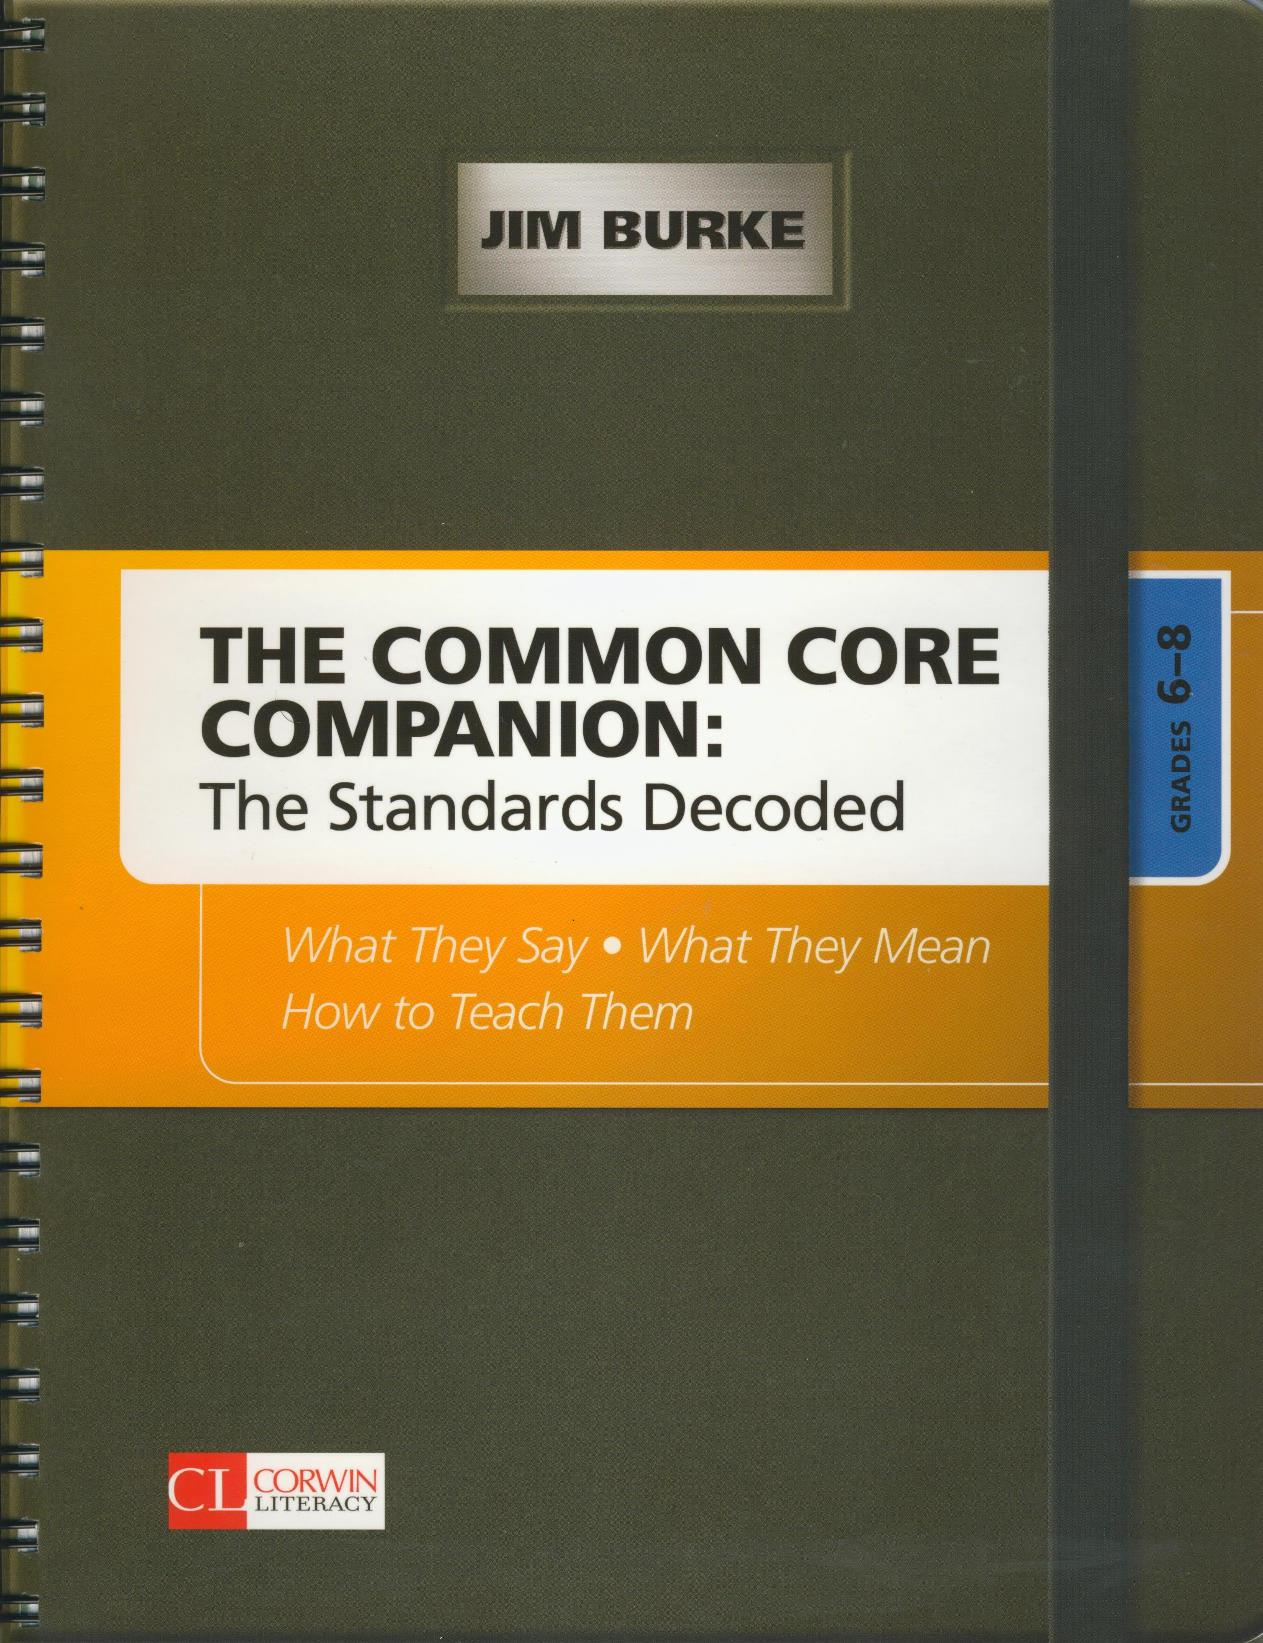 The Common Core Companion: The Standards Decoded Book - Grades 6-8